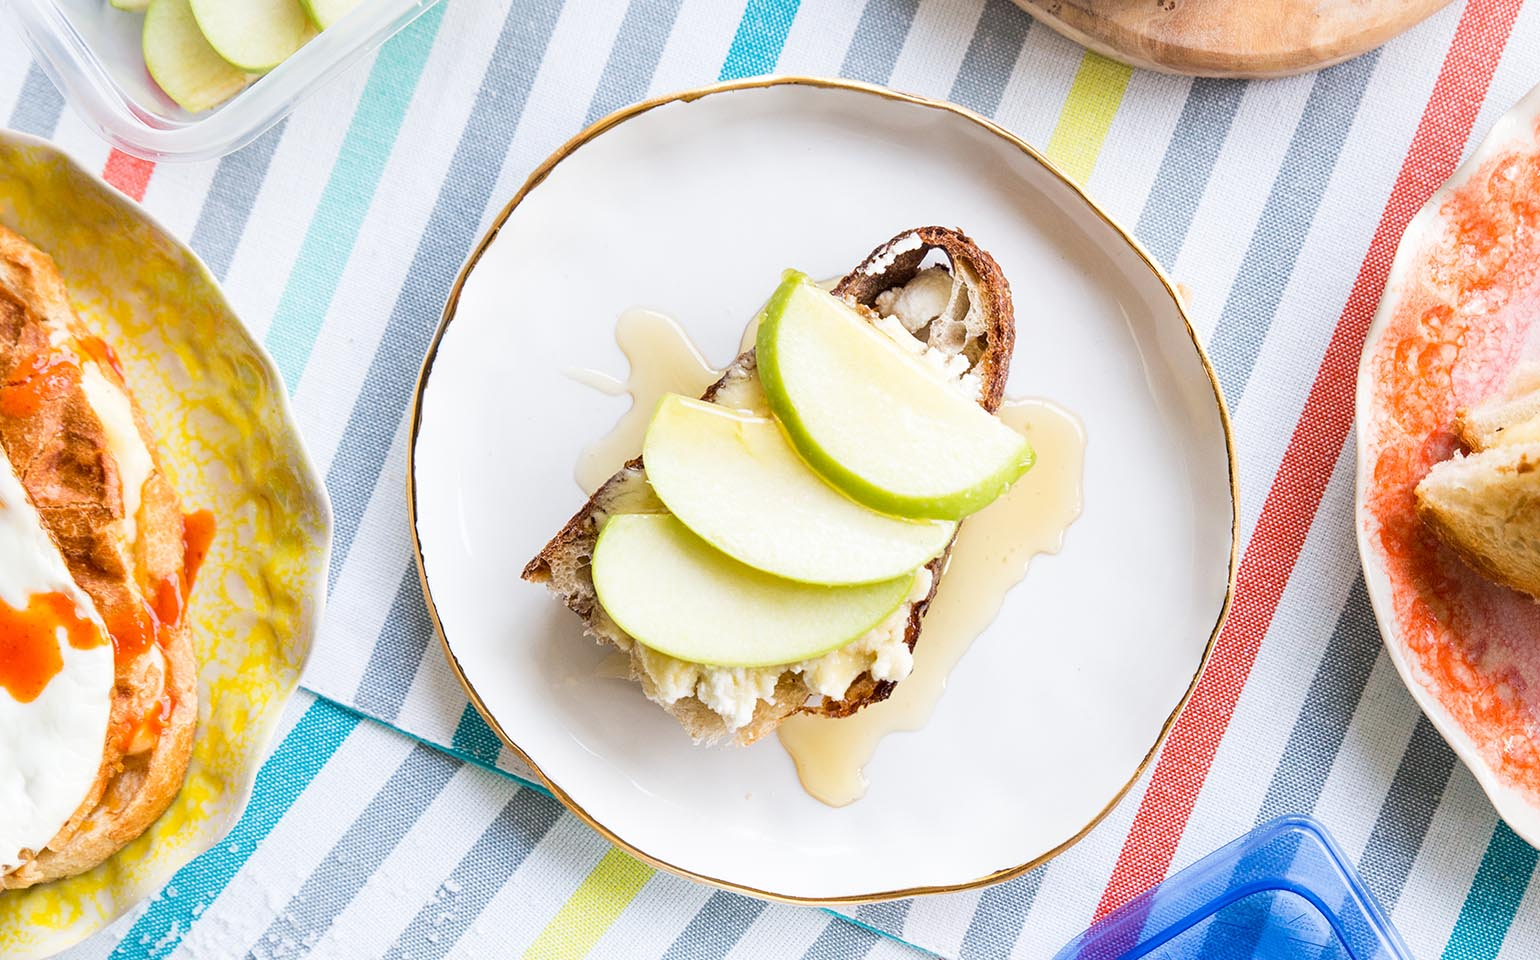 Dessert grilled cheese with ricotta, apples and honey